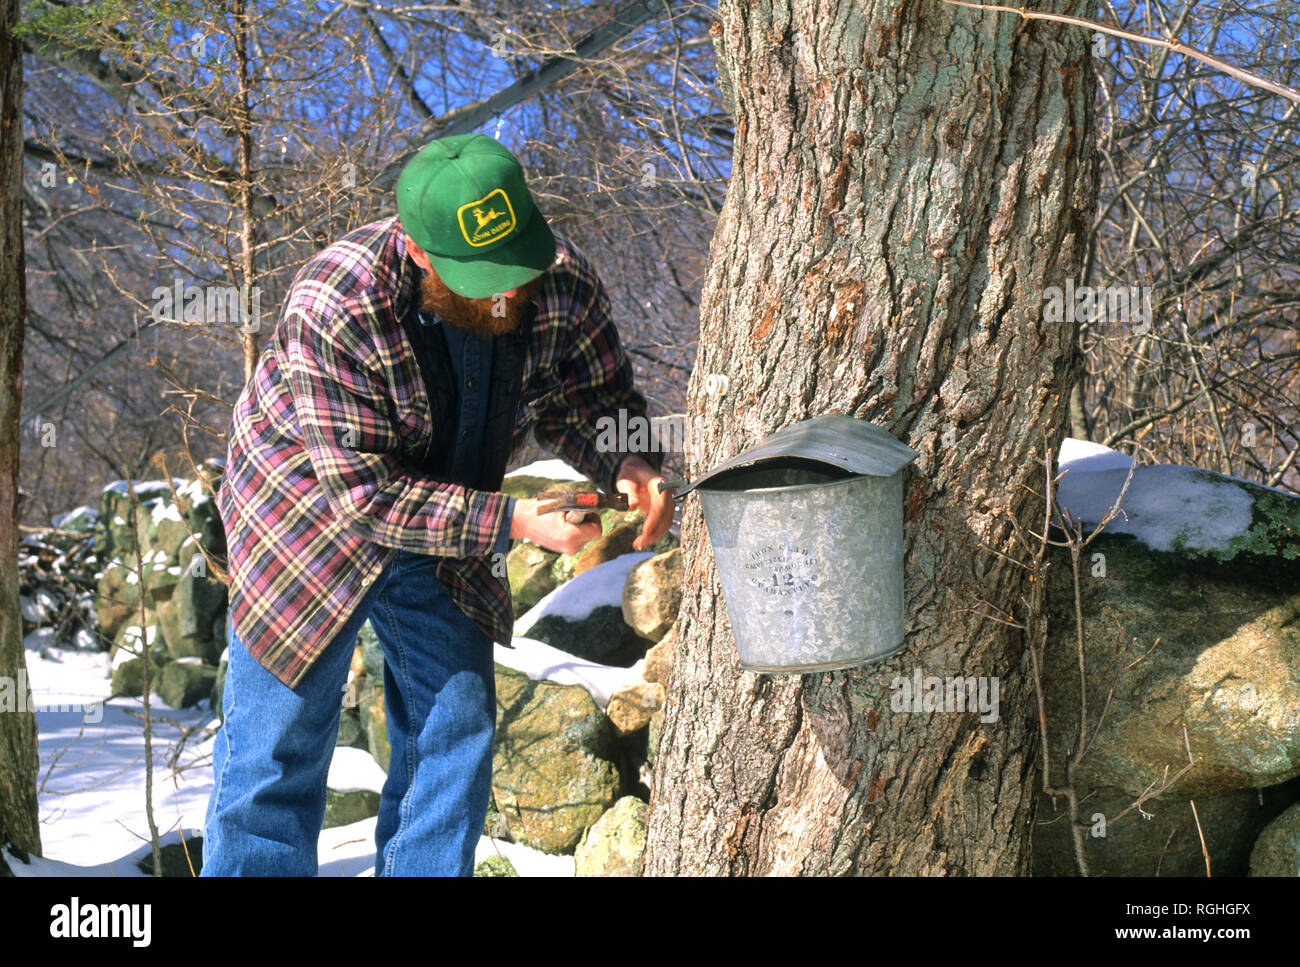 Tapping a tree for the Maple syrup season in Richmond, Rhode Island, USA - Stock Image